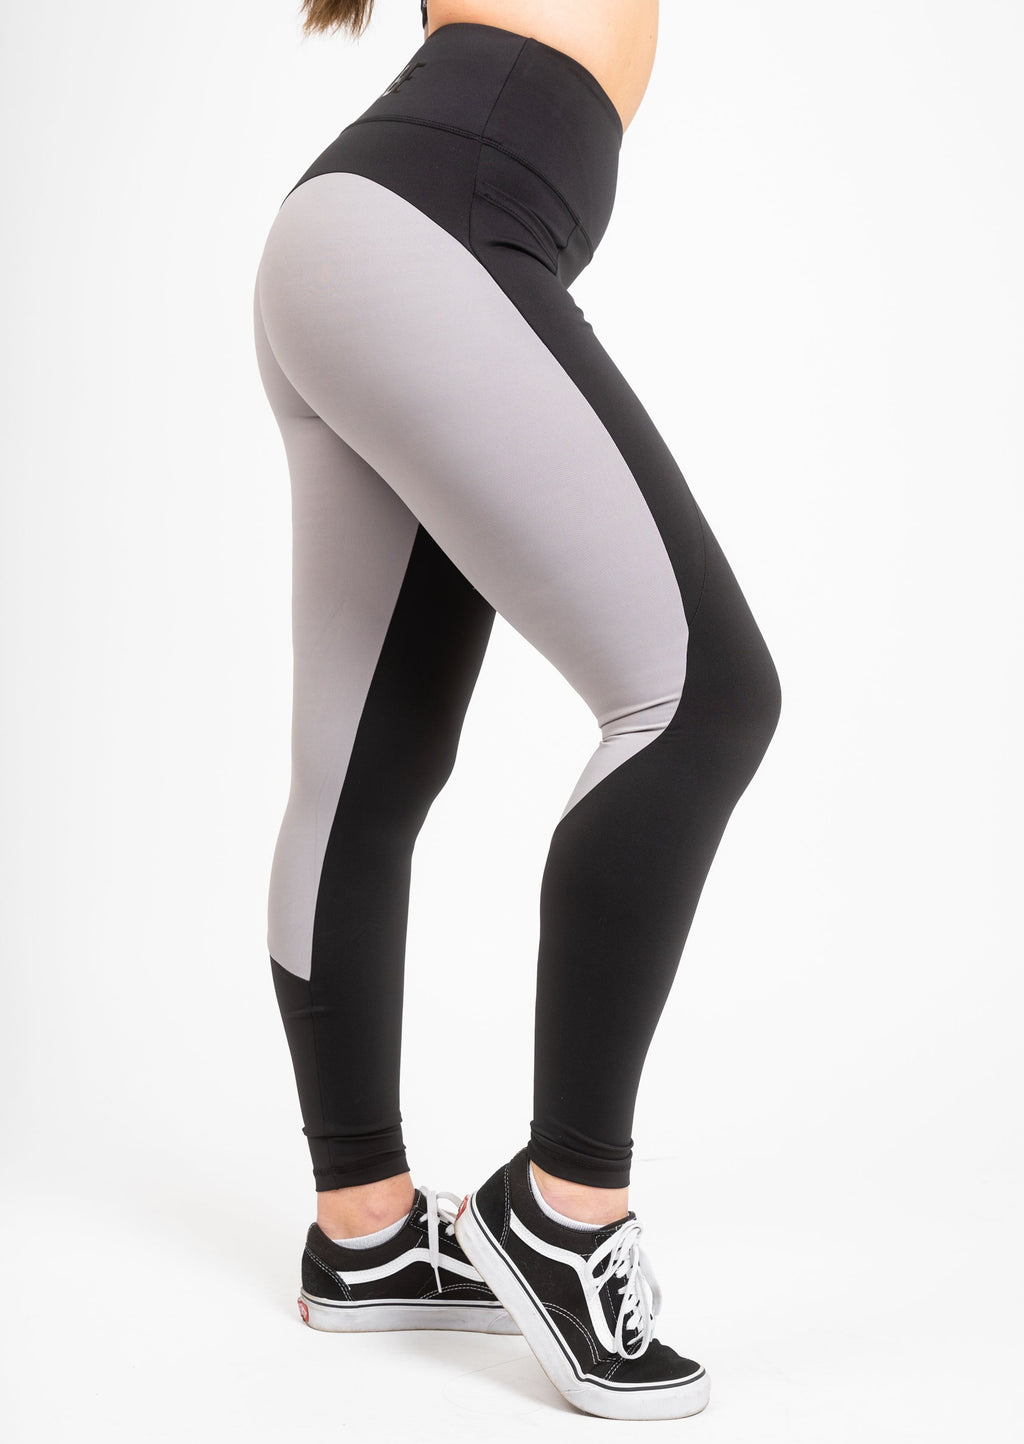 THUNDER BOOTY LEGGING 2.0 BLACK & STEEL